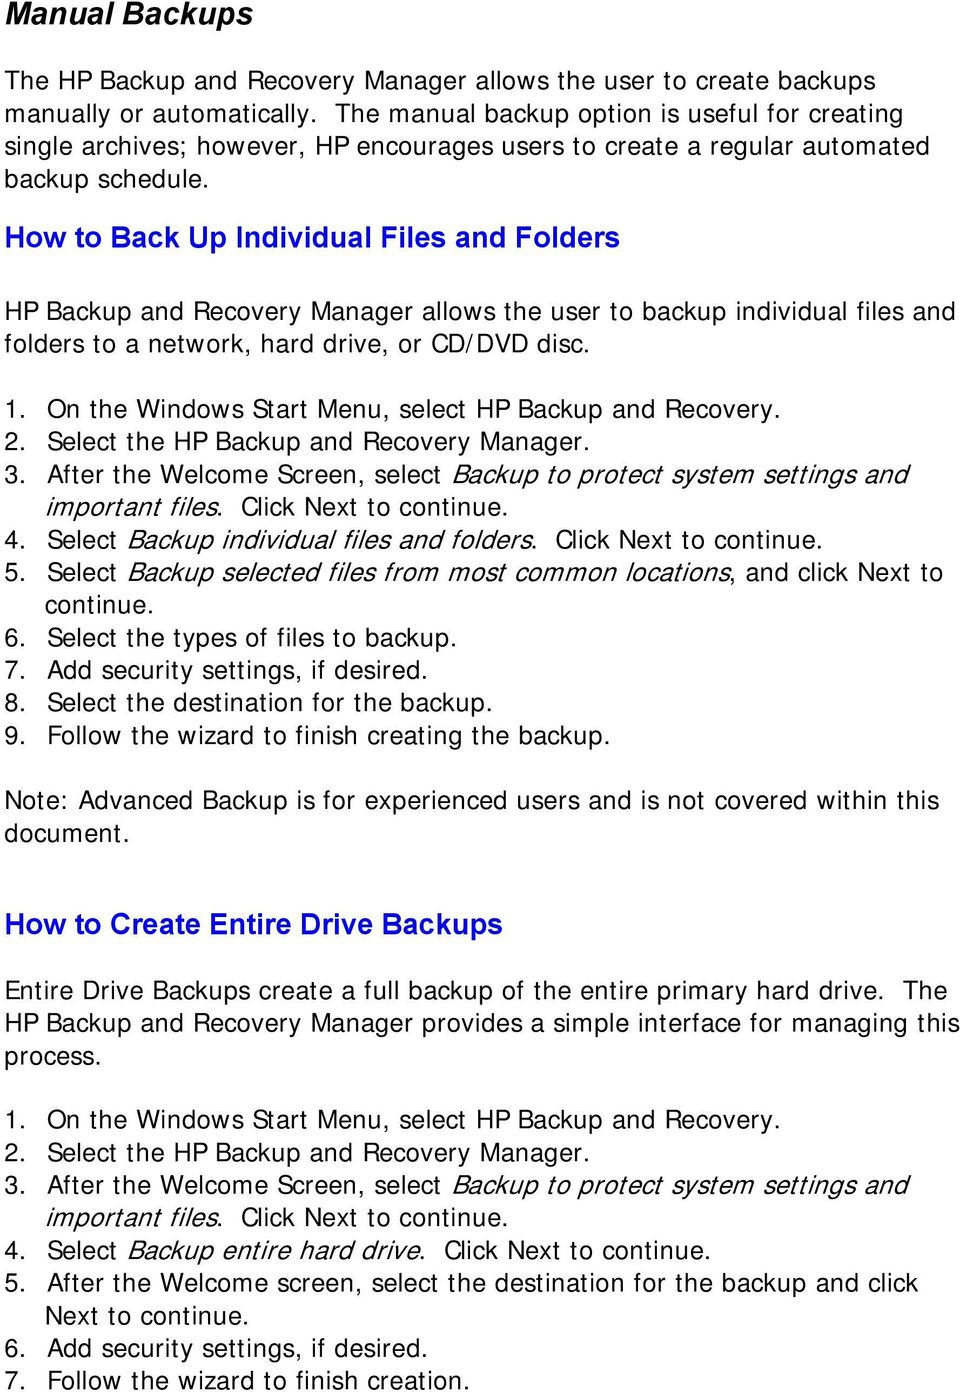 How to Back Up Individual Files and Folders HP Backup and Recovery Manager allows the user to backup individual files and folders to a network, hard drive, or CD/DVD disc. 2.